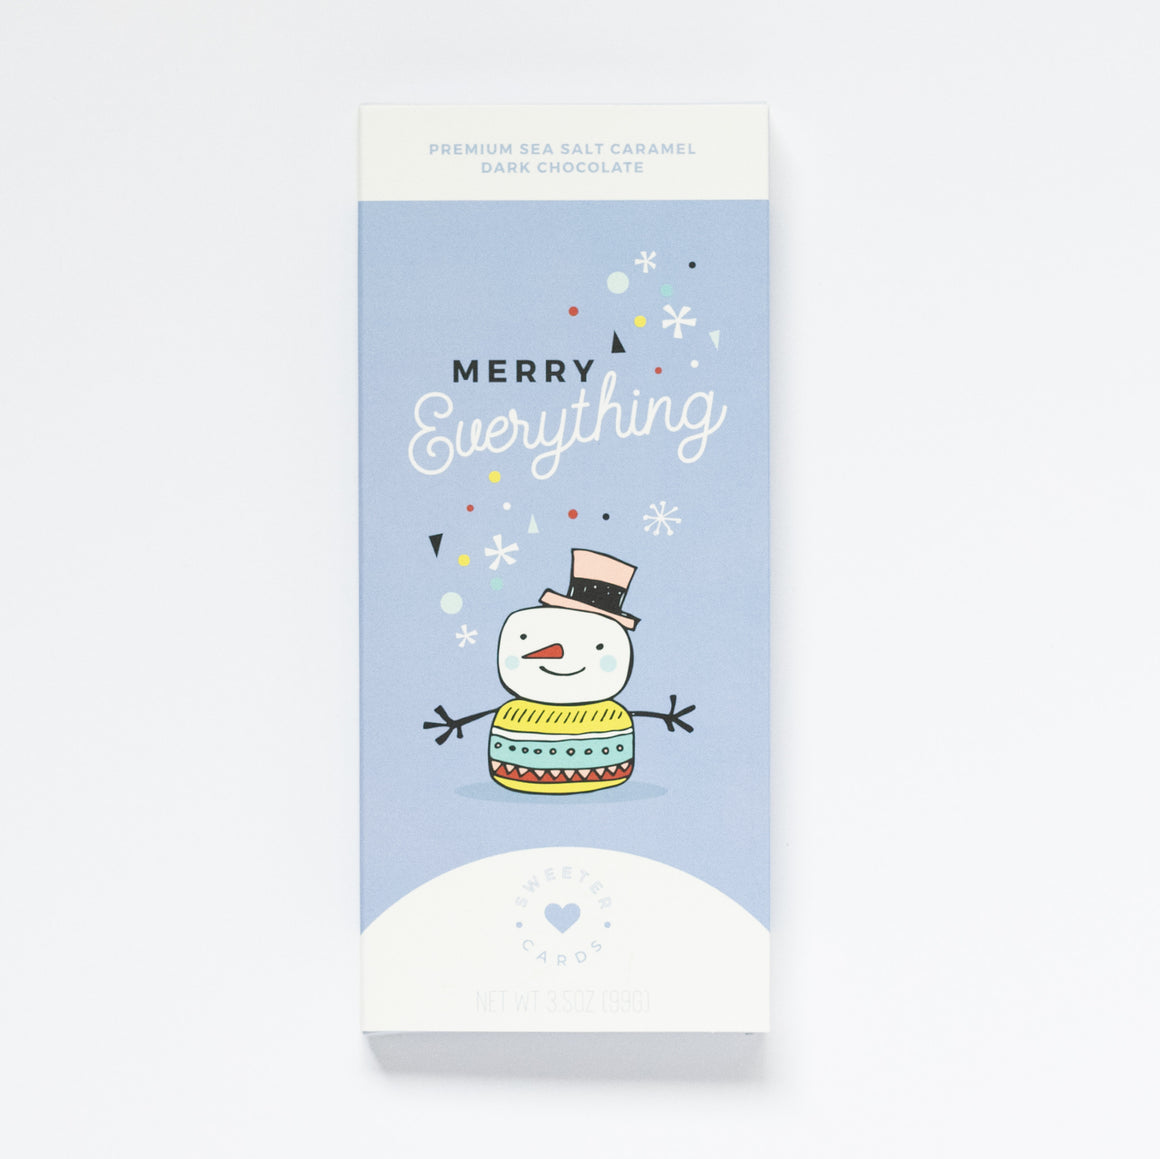 Chocolate Holiday Cards - With A Sea Salt Caramel Dark Chocolate Bar